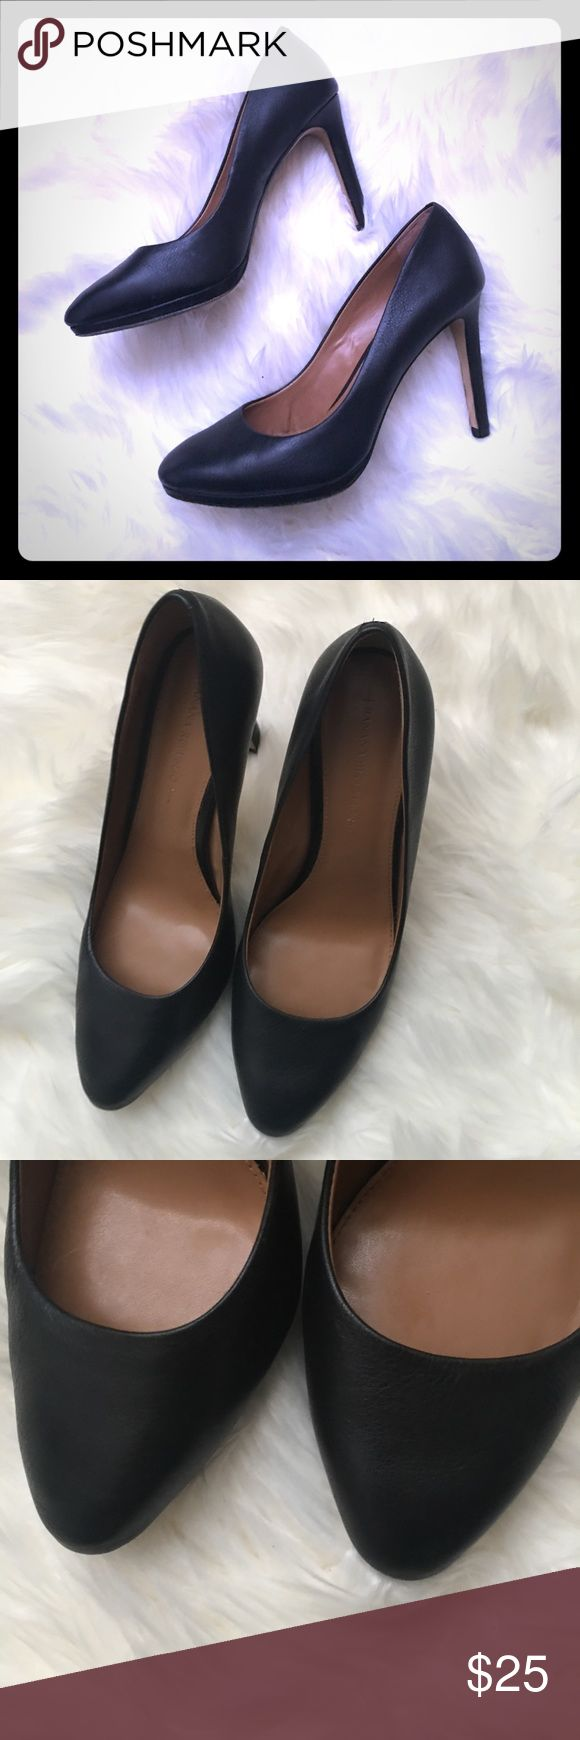 Black Banana Republic Heels Preowned Great Condition Banana Republic Shoes Heels